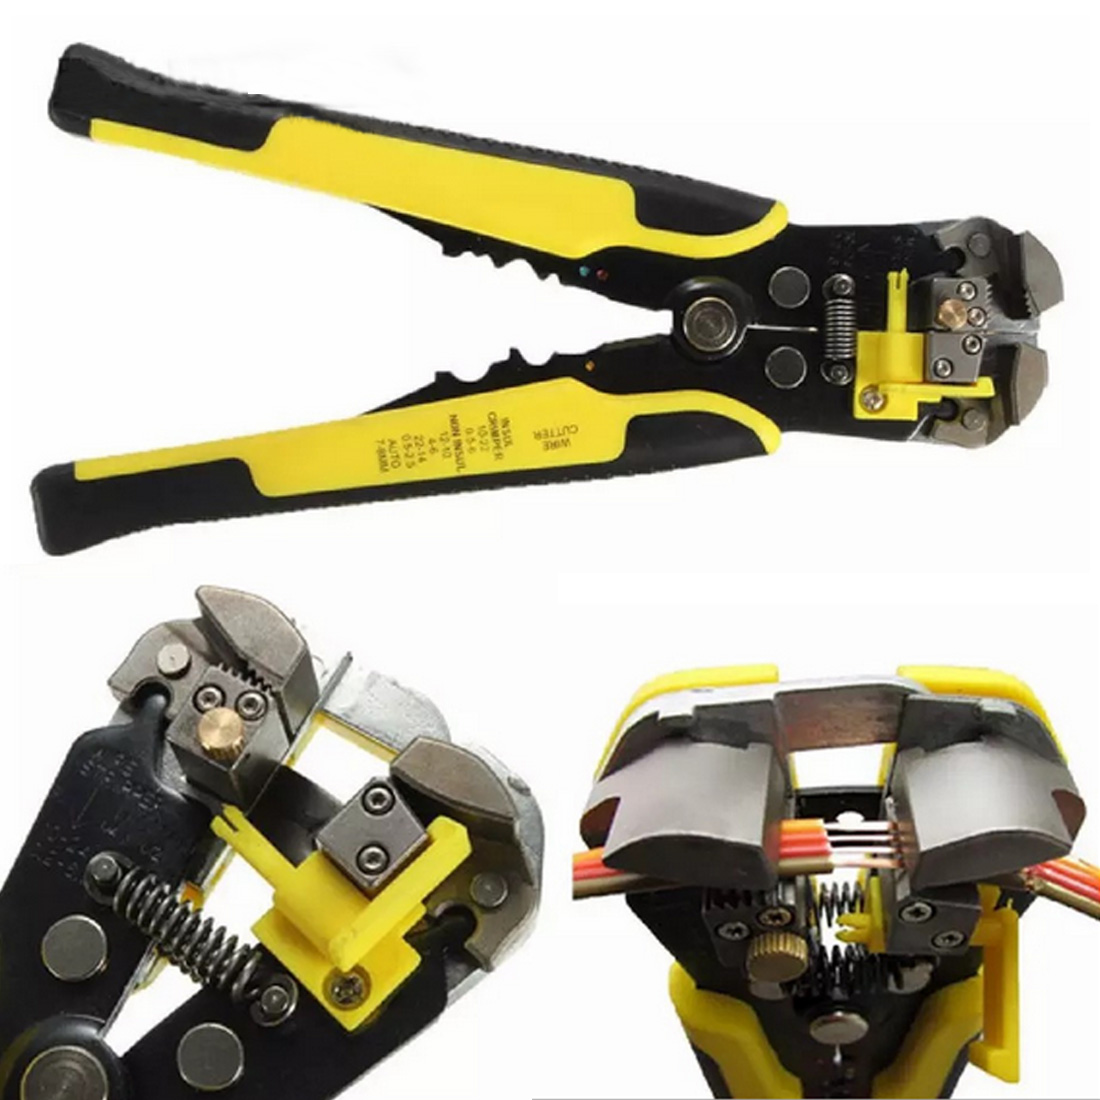 цена на HS-D1 Crimper Cable Cutter Automatic Wire Stripper Multifunctional Stripping Tools Crimping Pliers Terminal 0.2-6.0mm2 Tool